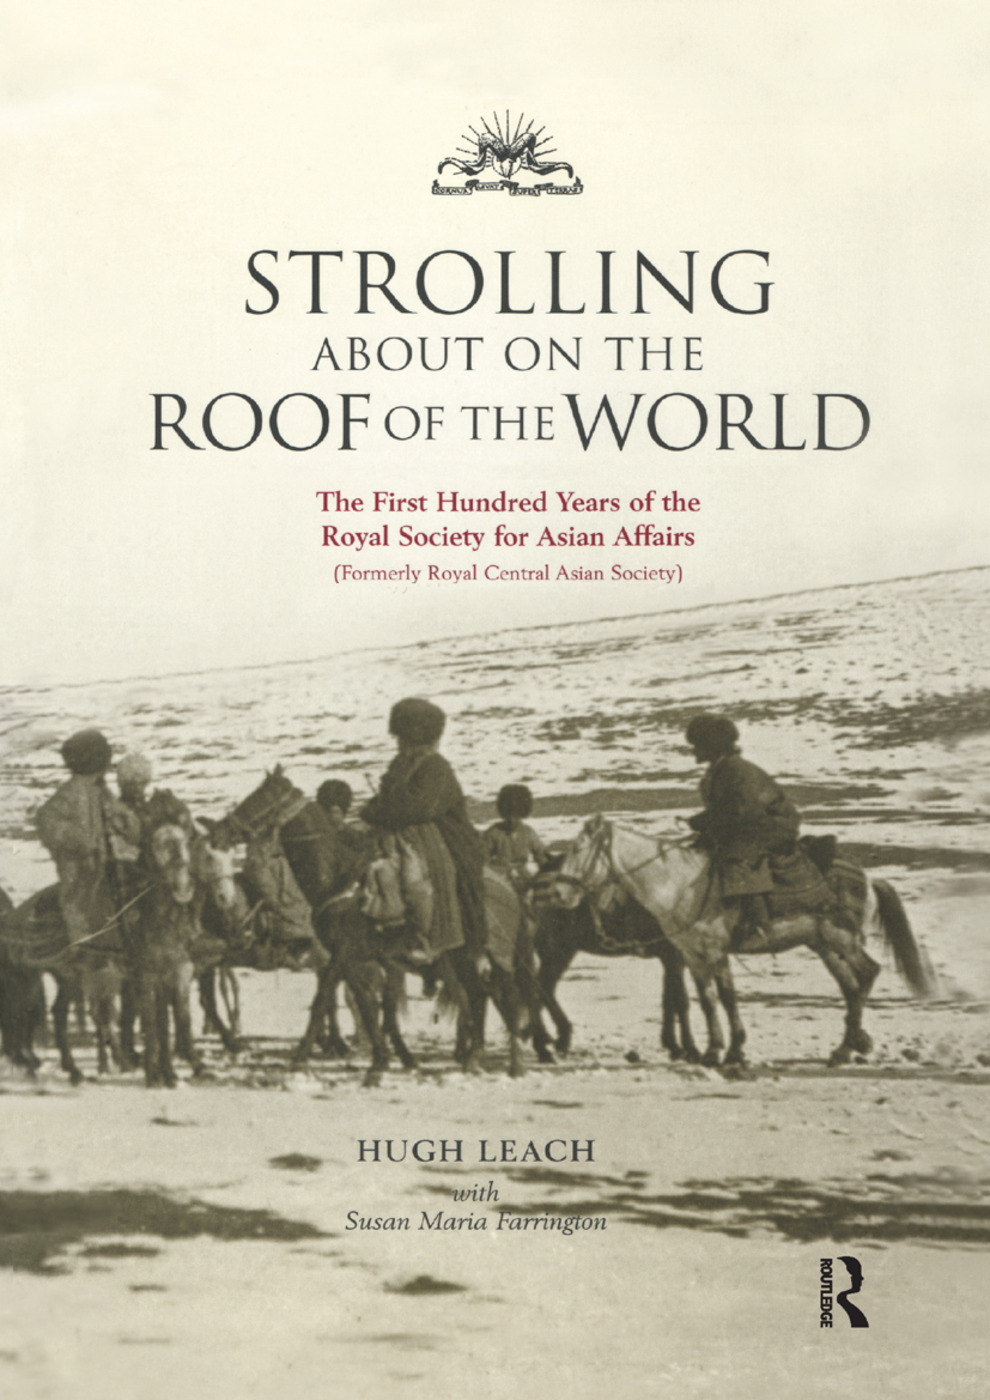 Strolling About on the Roof of the World: The First Hundred Years of the Royal Society for Asian Affairs, 1st Edition (Paperback) book cover